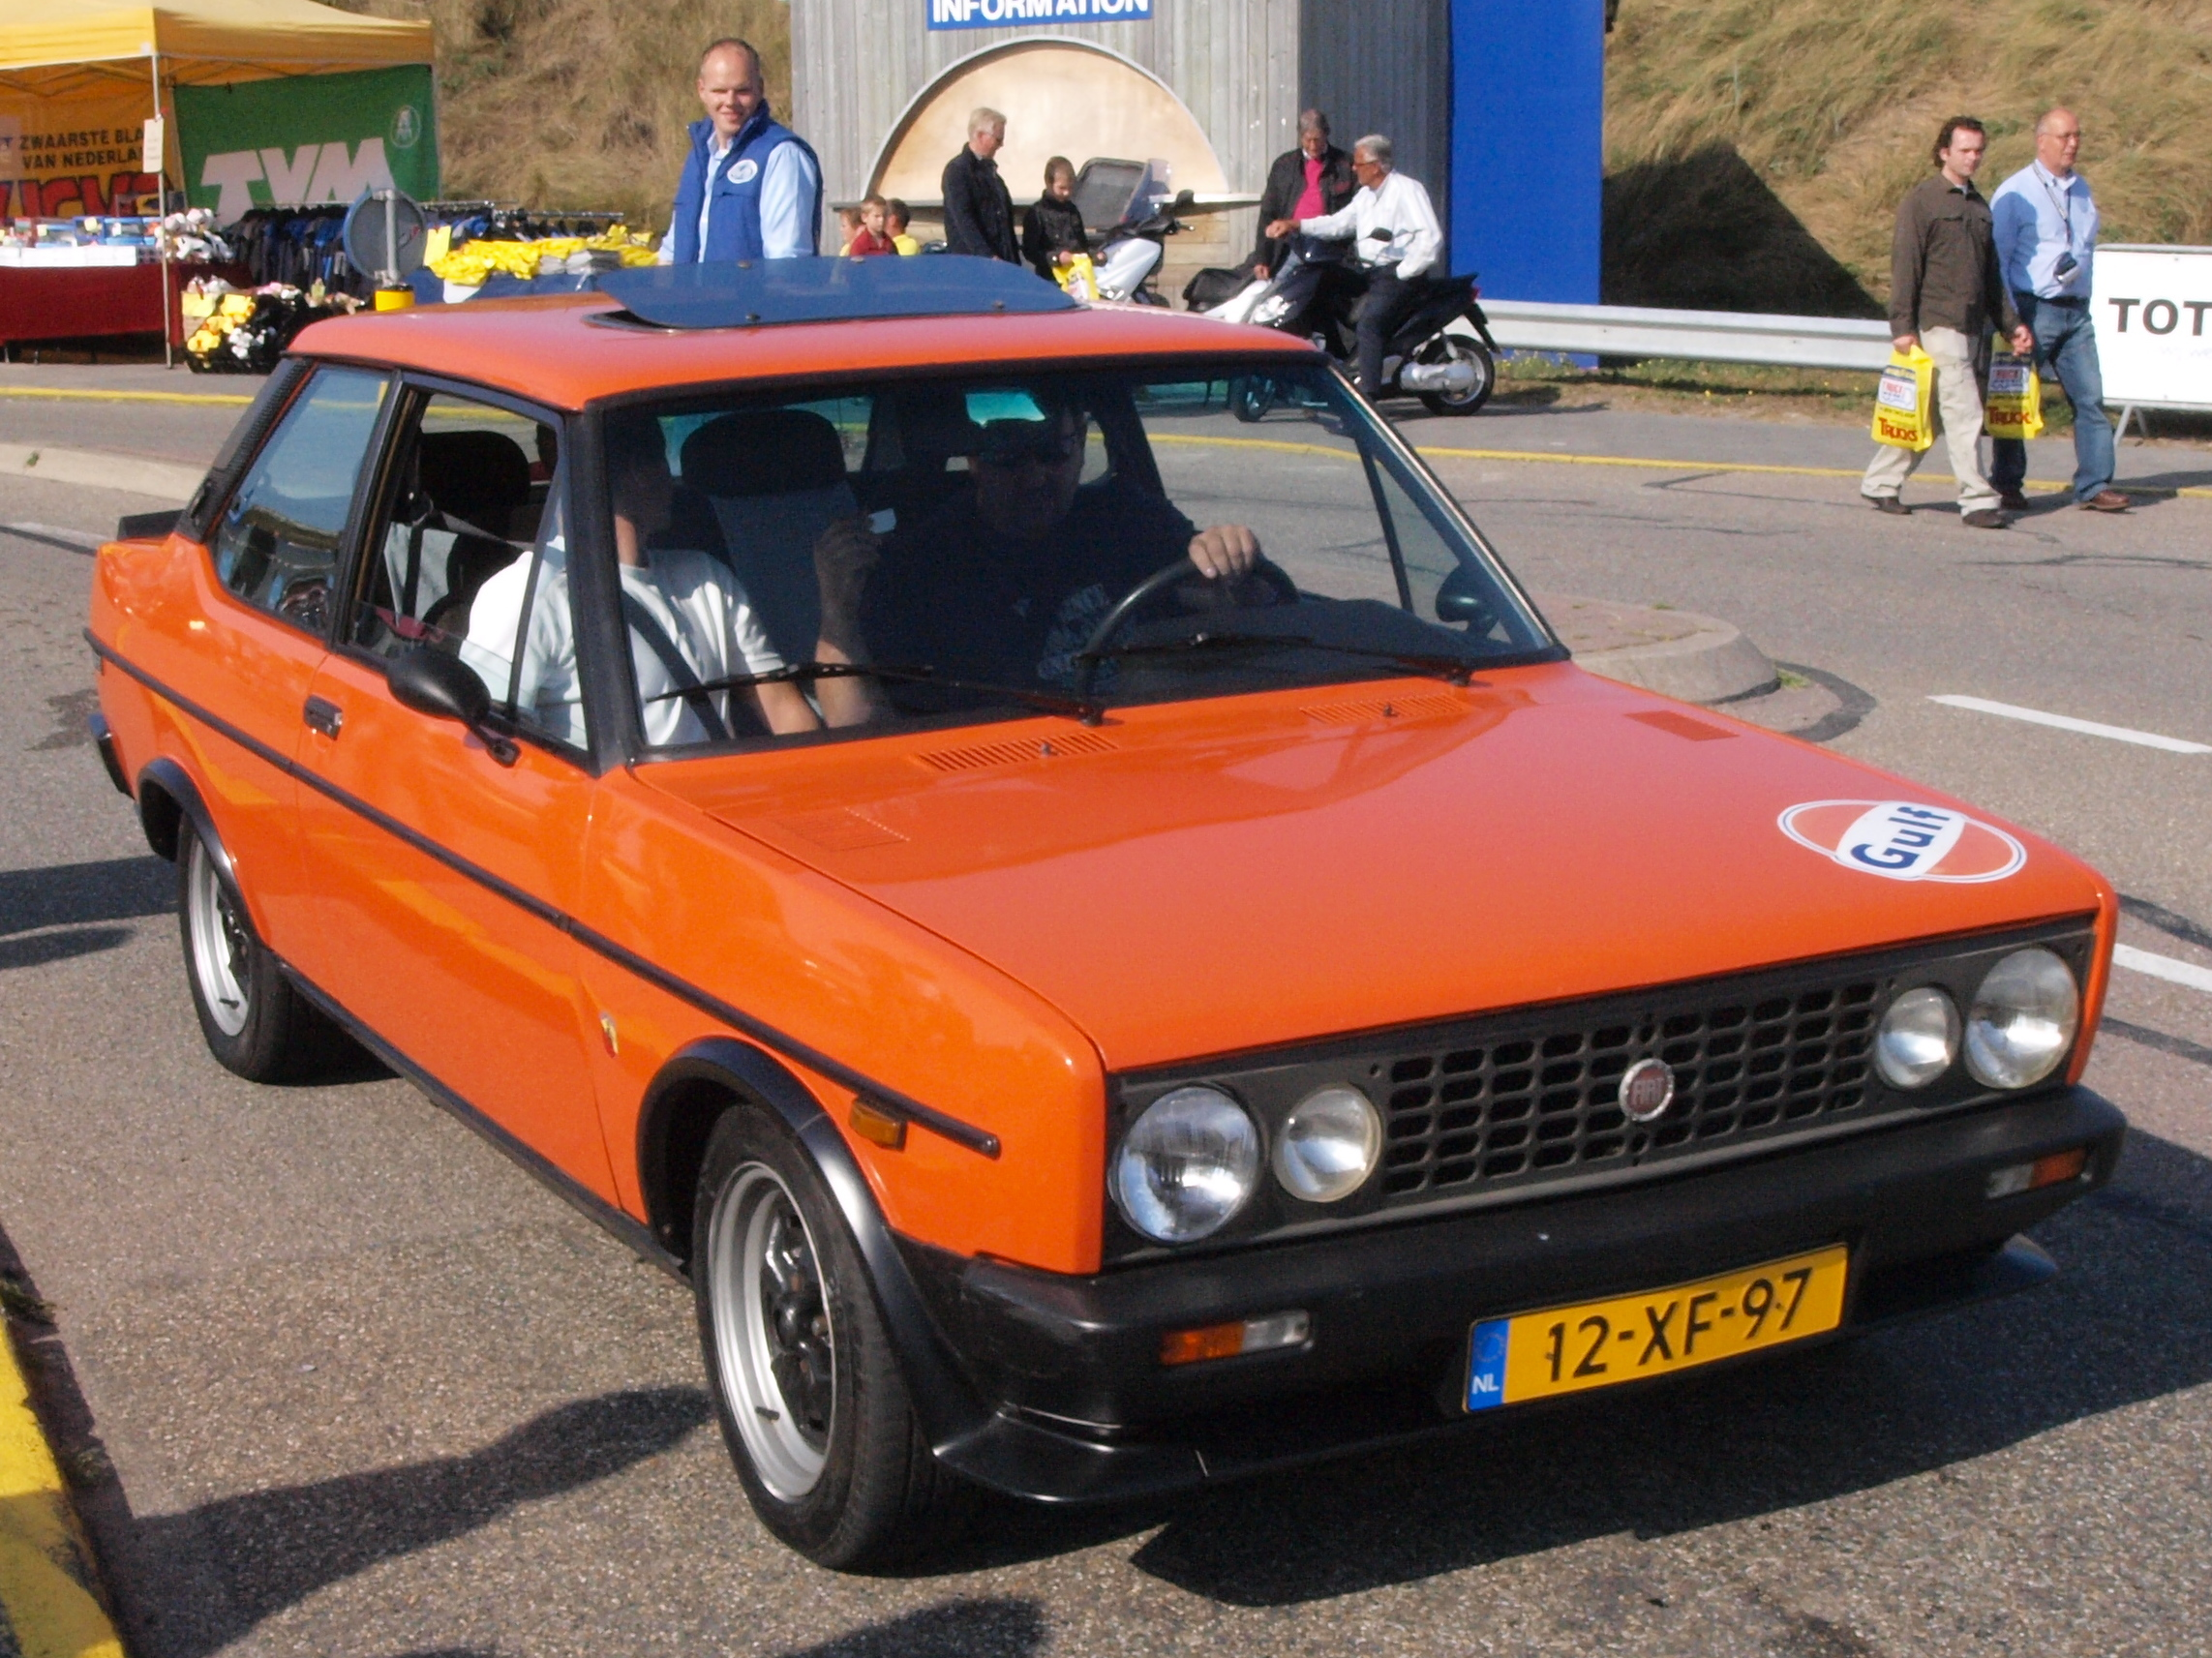 File Fiat 131 Racing Dutch Licence Registration 12 Xf 97